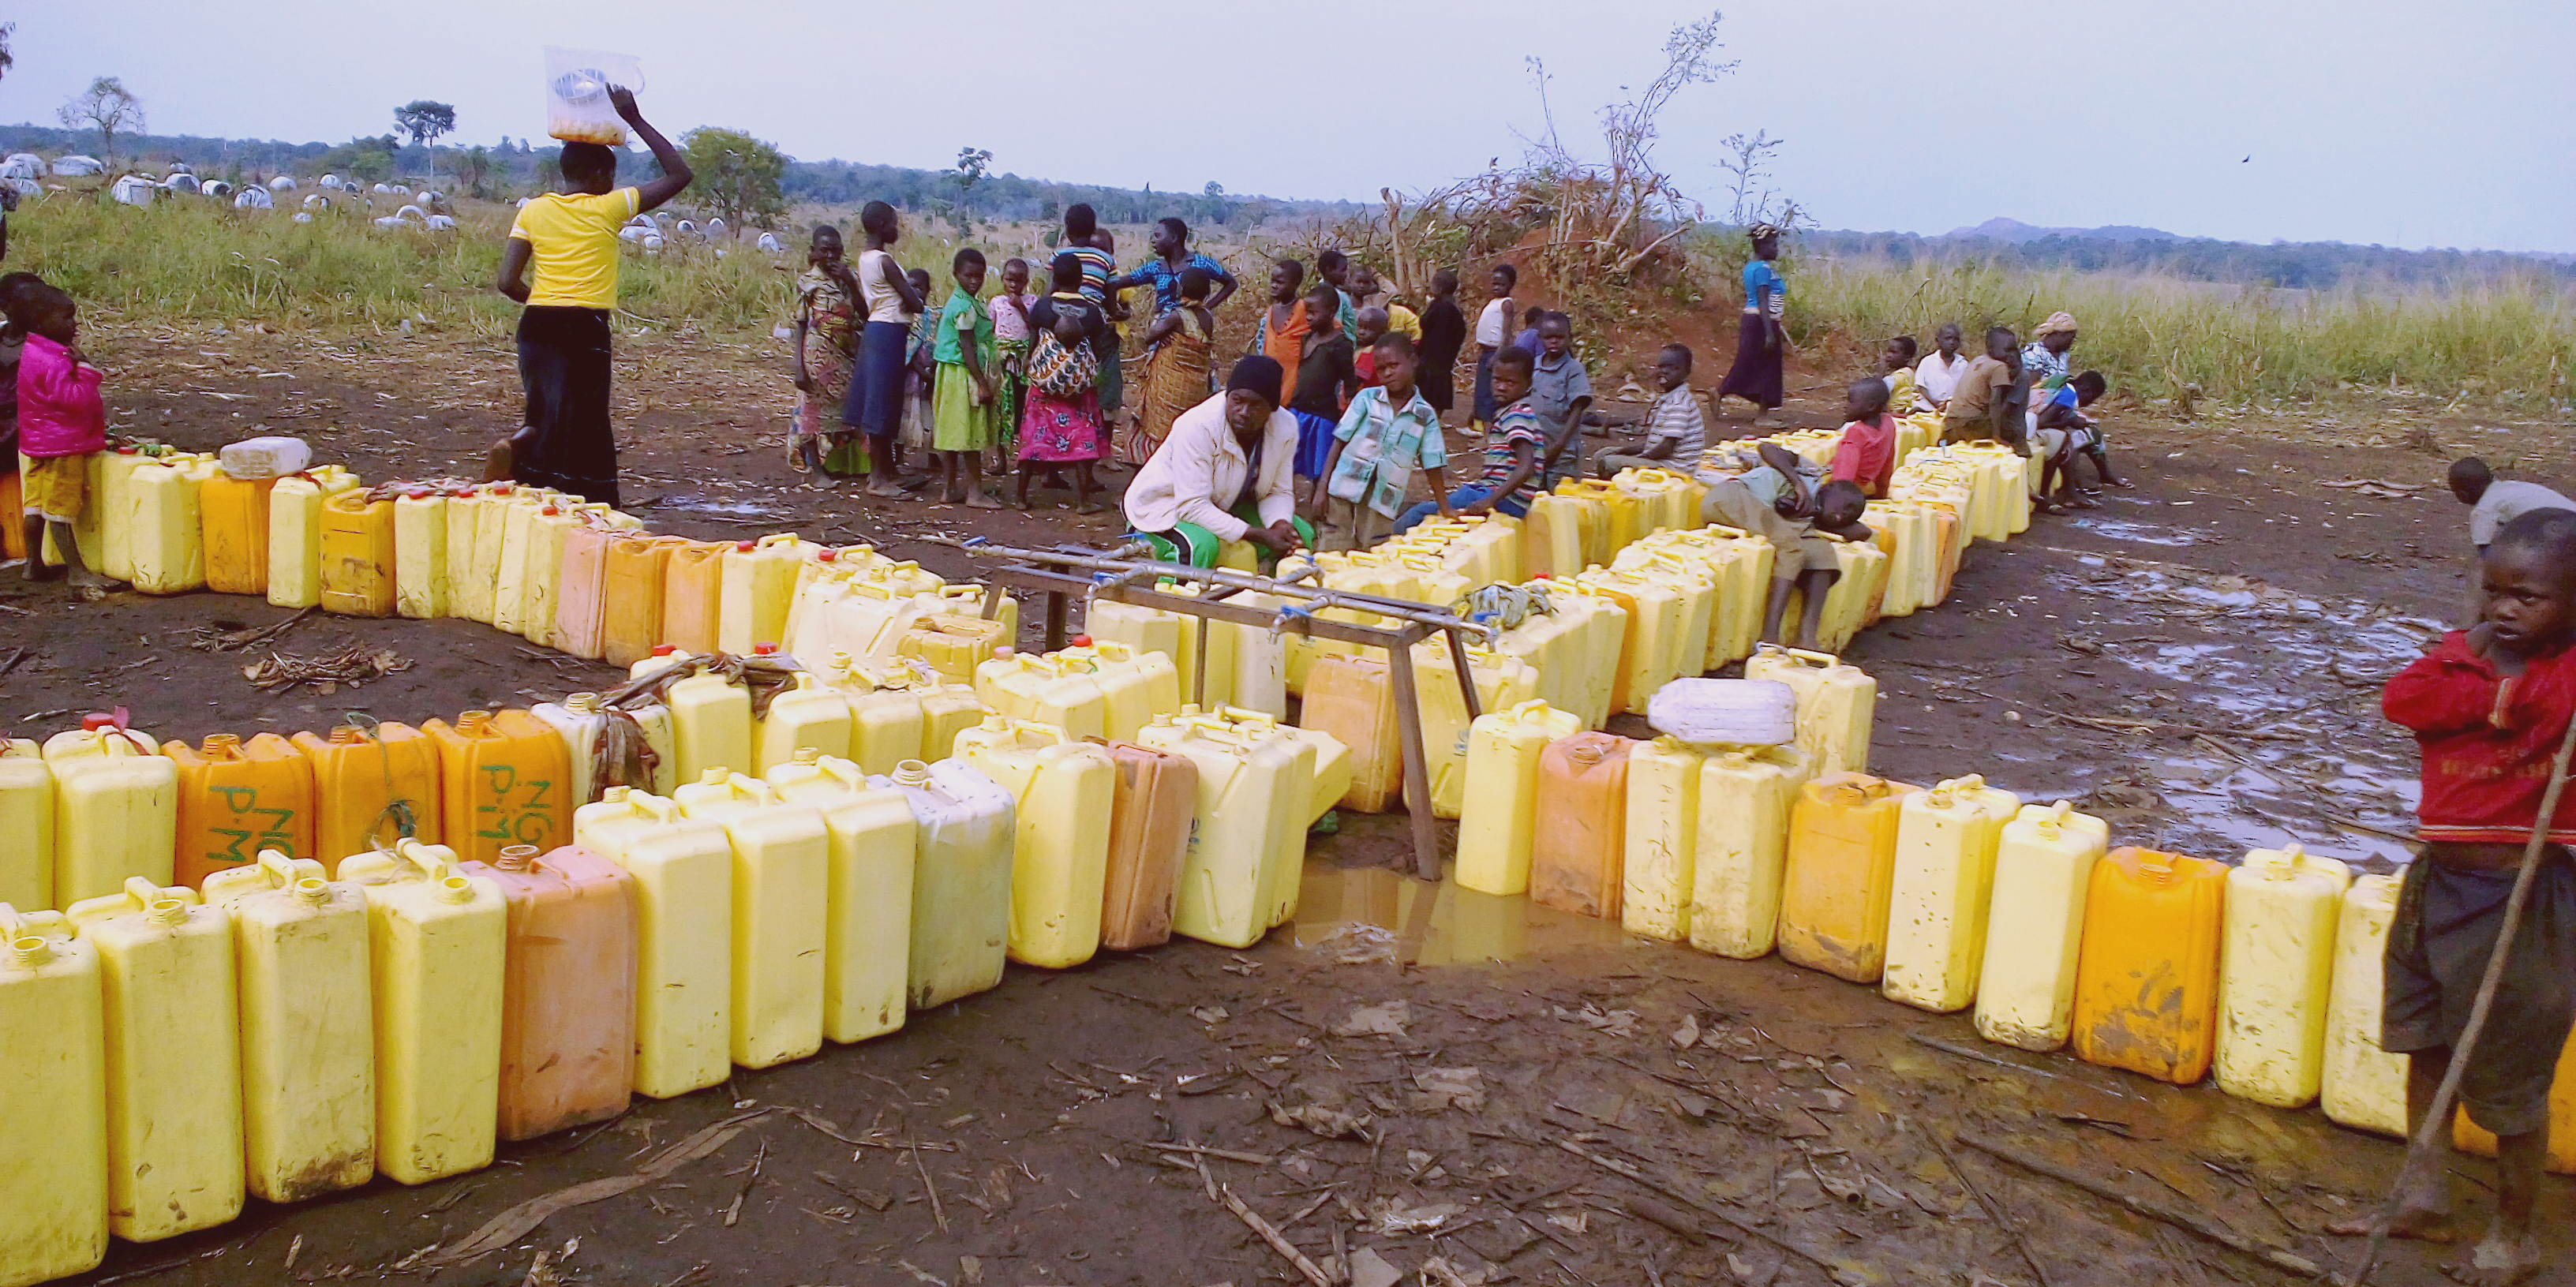 The refugee's wait for water at Maratatu camp, Kyangwali refugee settlement, Hoima district. Access to clean water remains one of the challenges